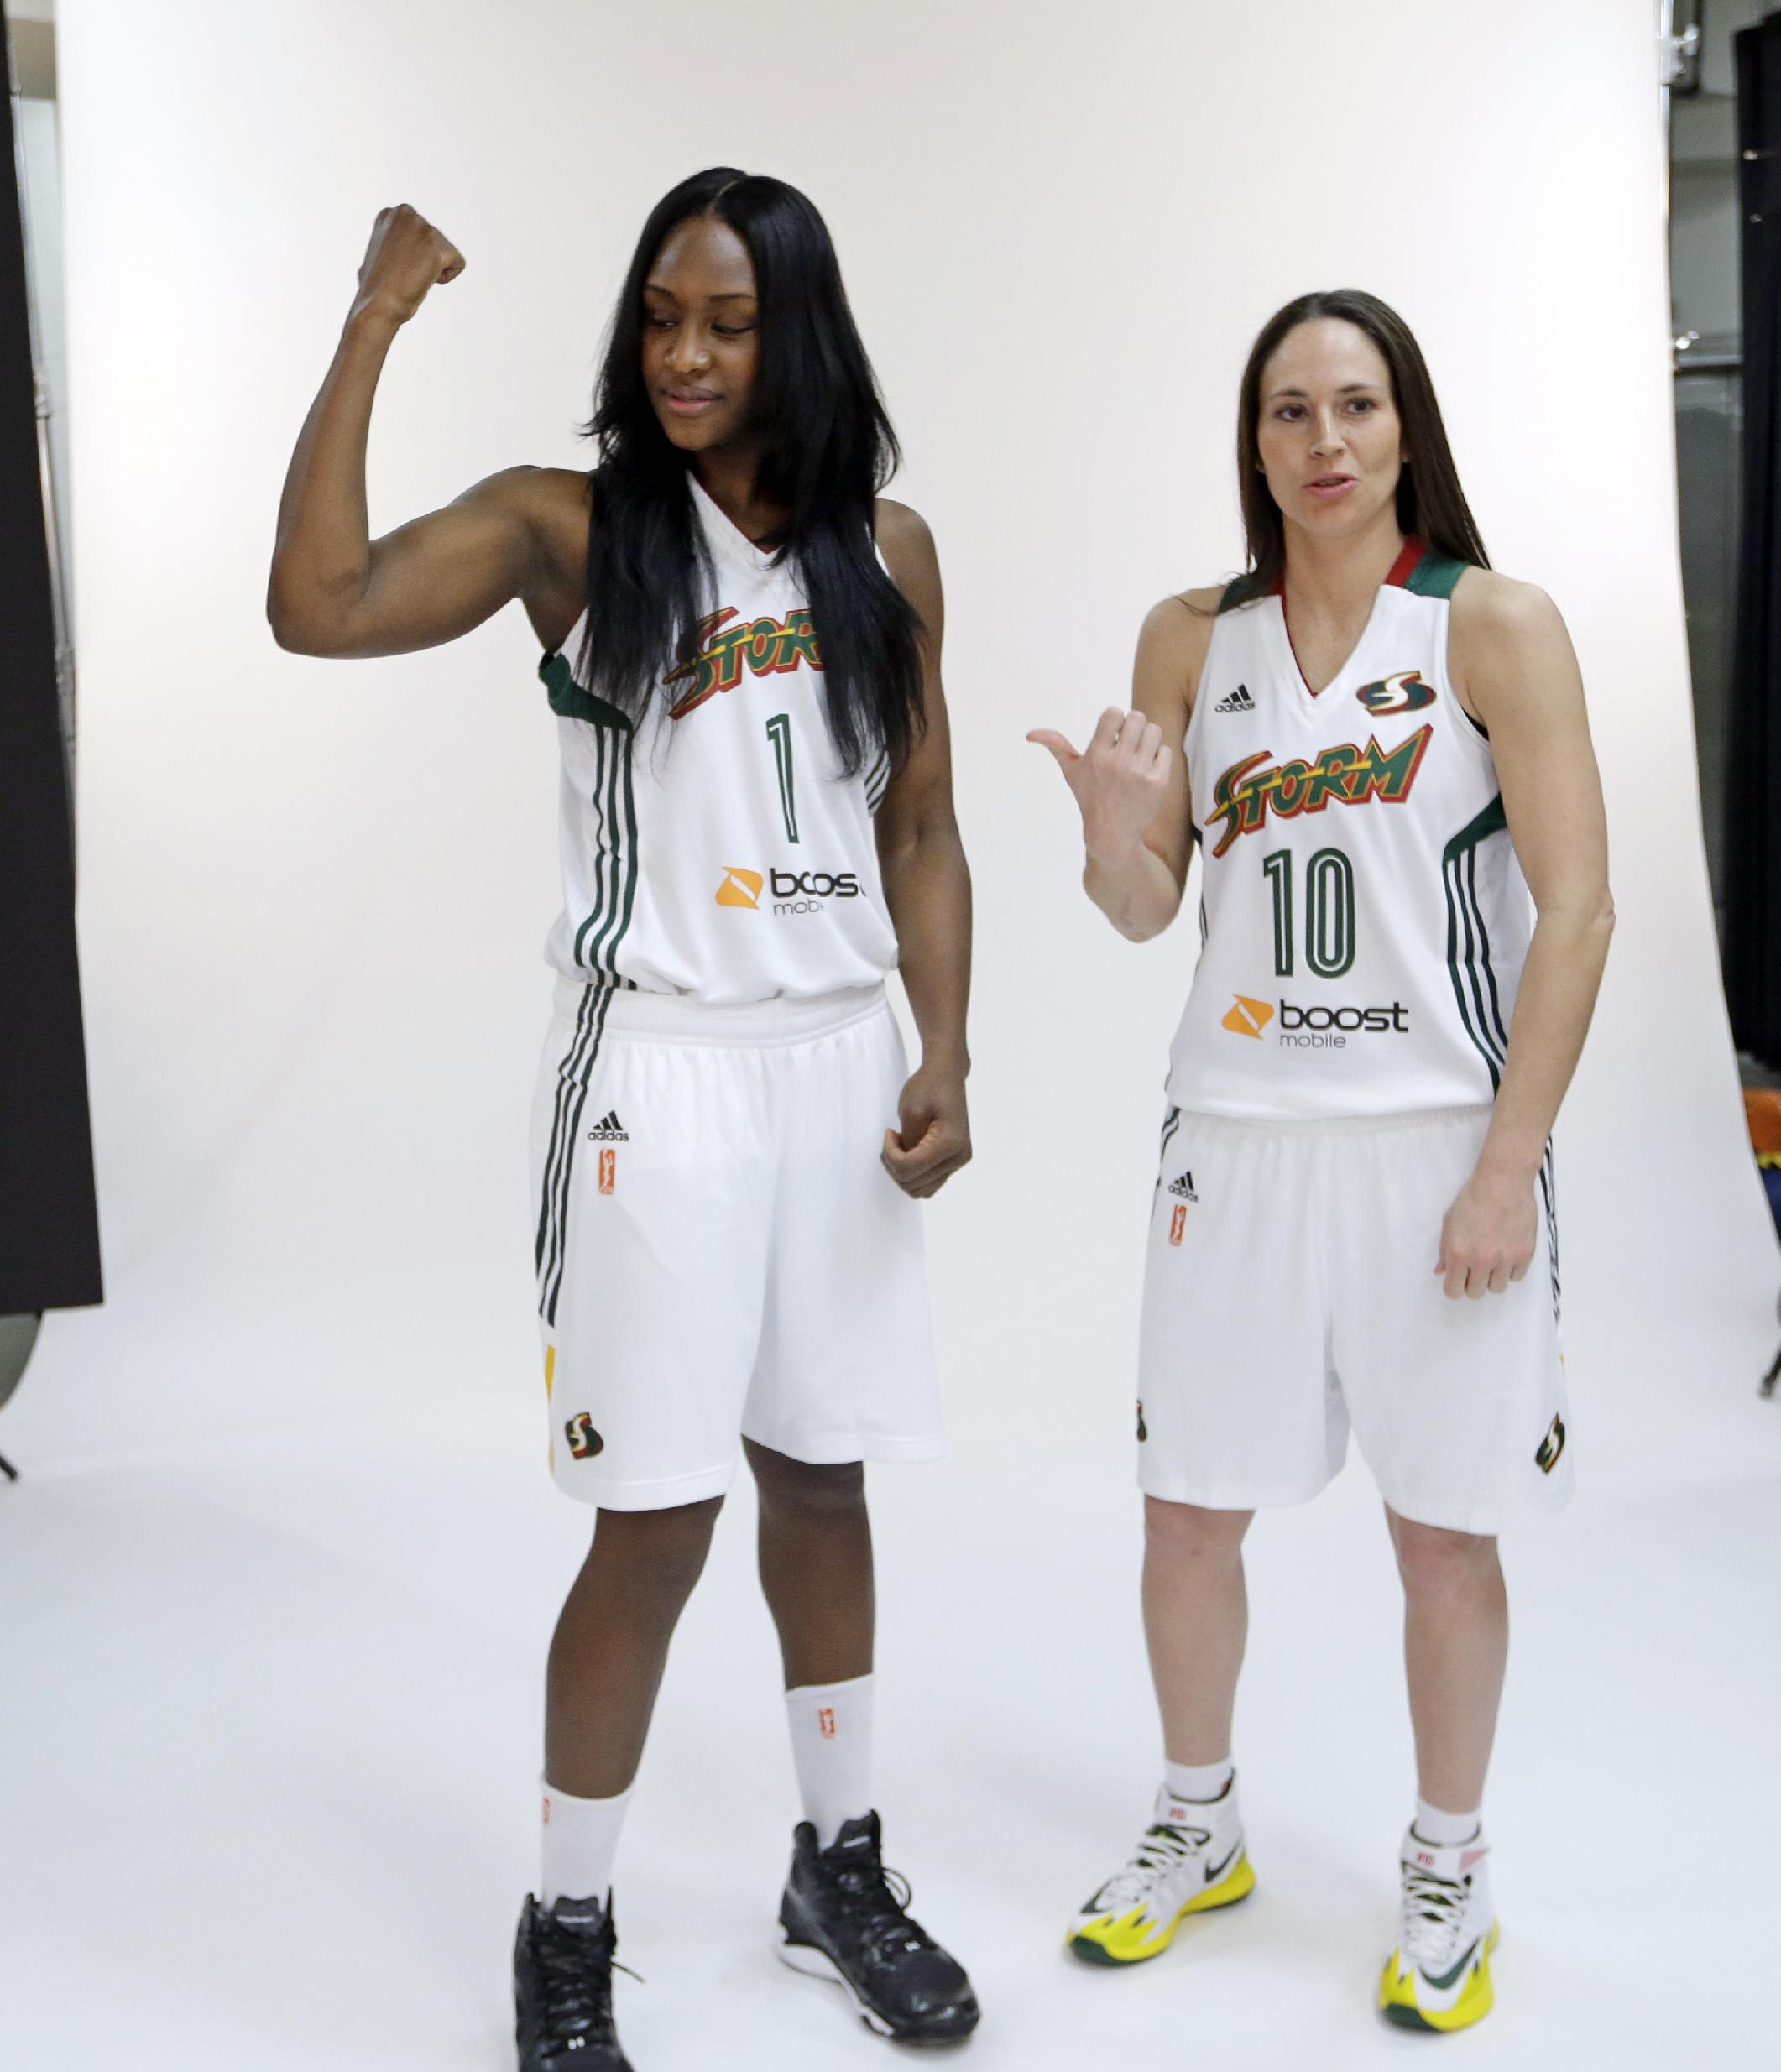 Seattle Storm's Crystal Langhorne, left, flexes her muscles after being asked as Sue Bird looks stands near during a photo session at the team's annual media day Wednesday, May 7, 2014, in Seattle. The team opens against the Los Angeles Sparks on May 16 in Seattle